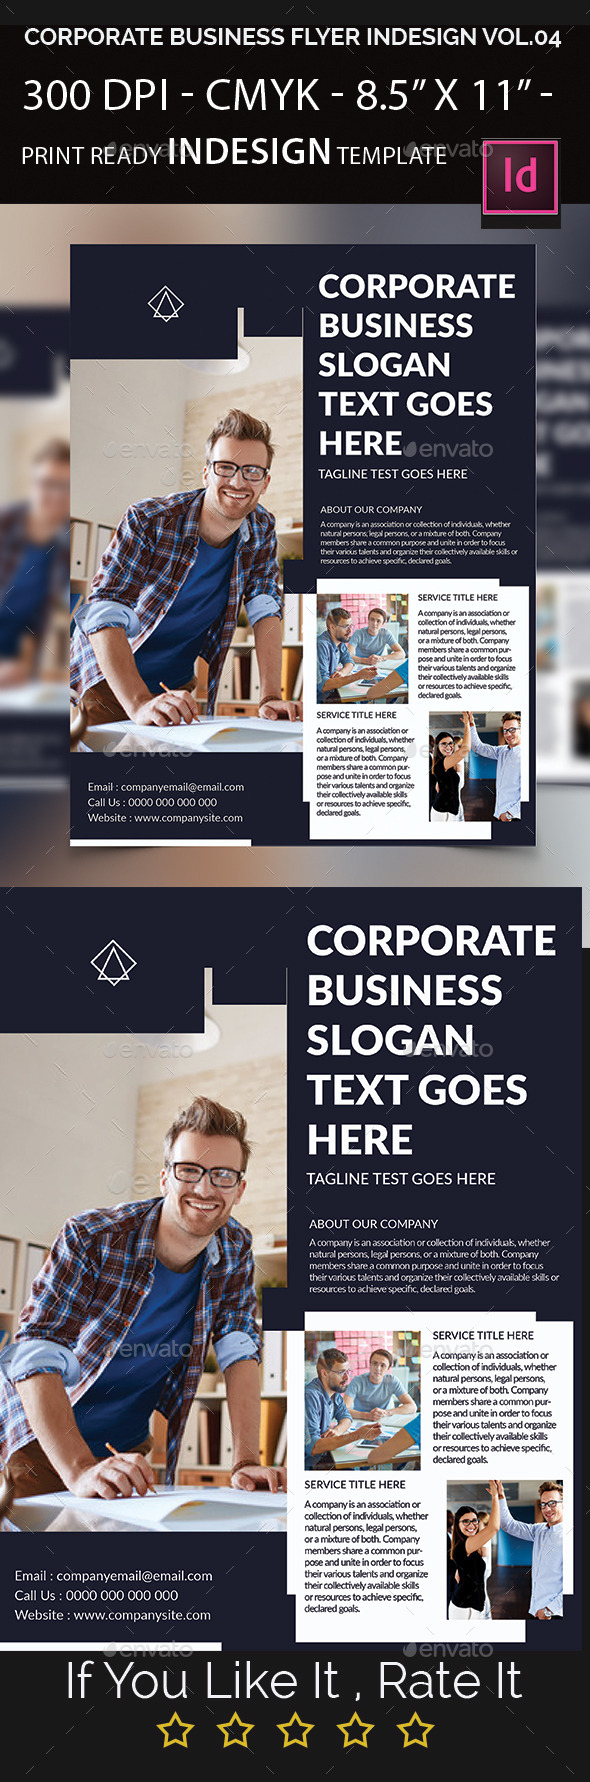 Corporate Business Flyer Indesign Template - Corporate Flyers